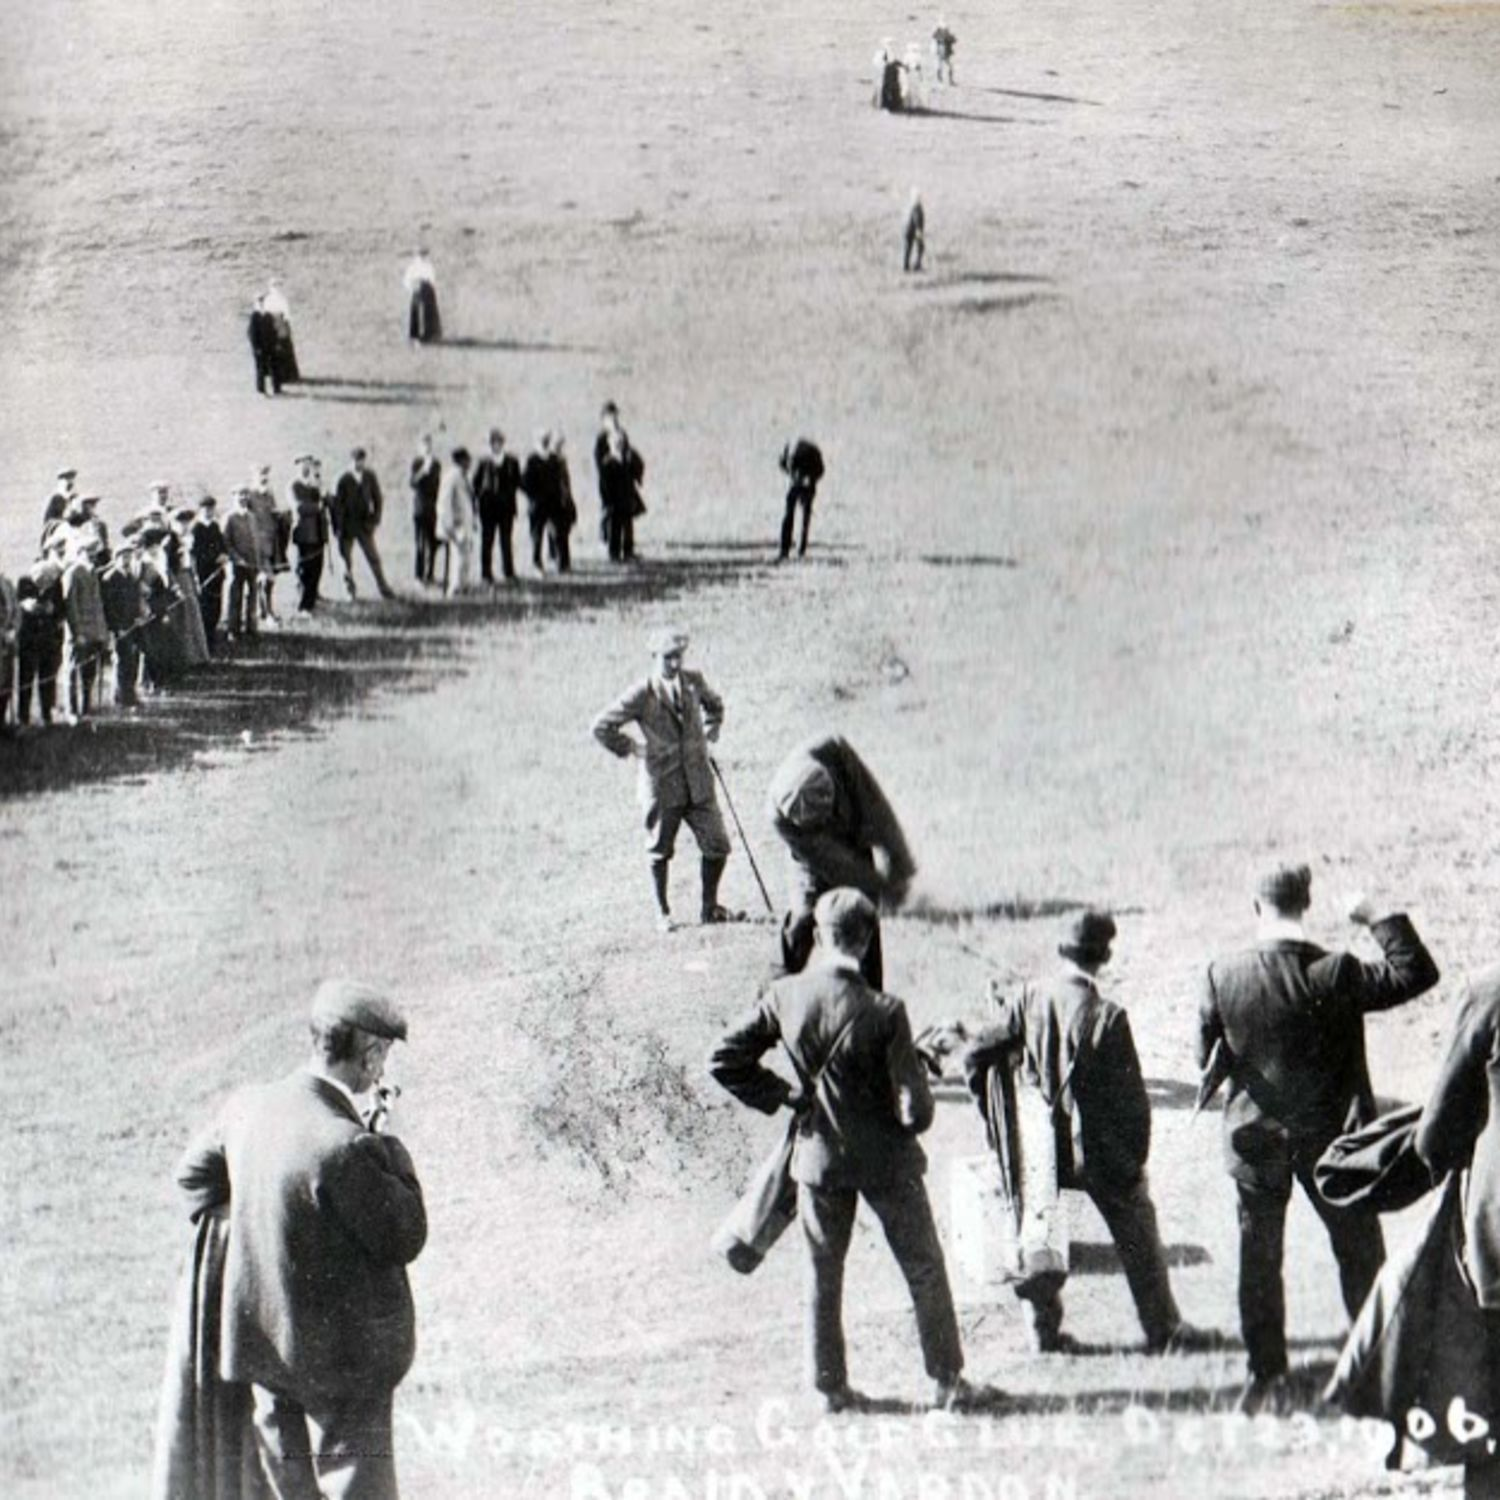 The exhibition match in 1906